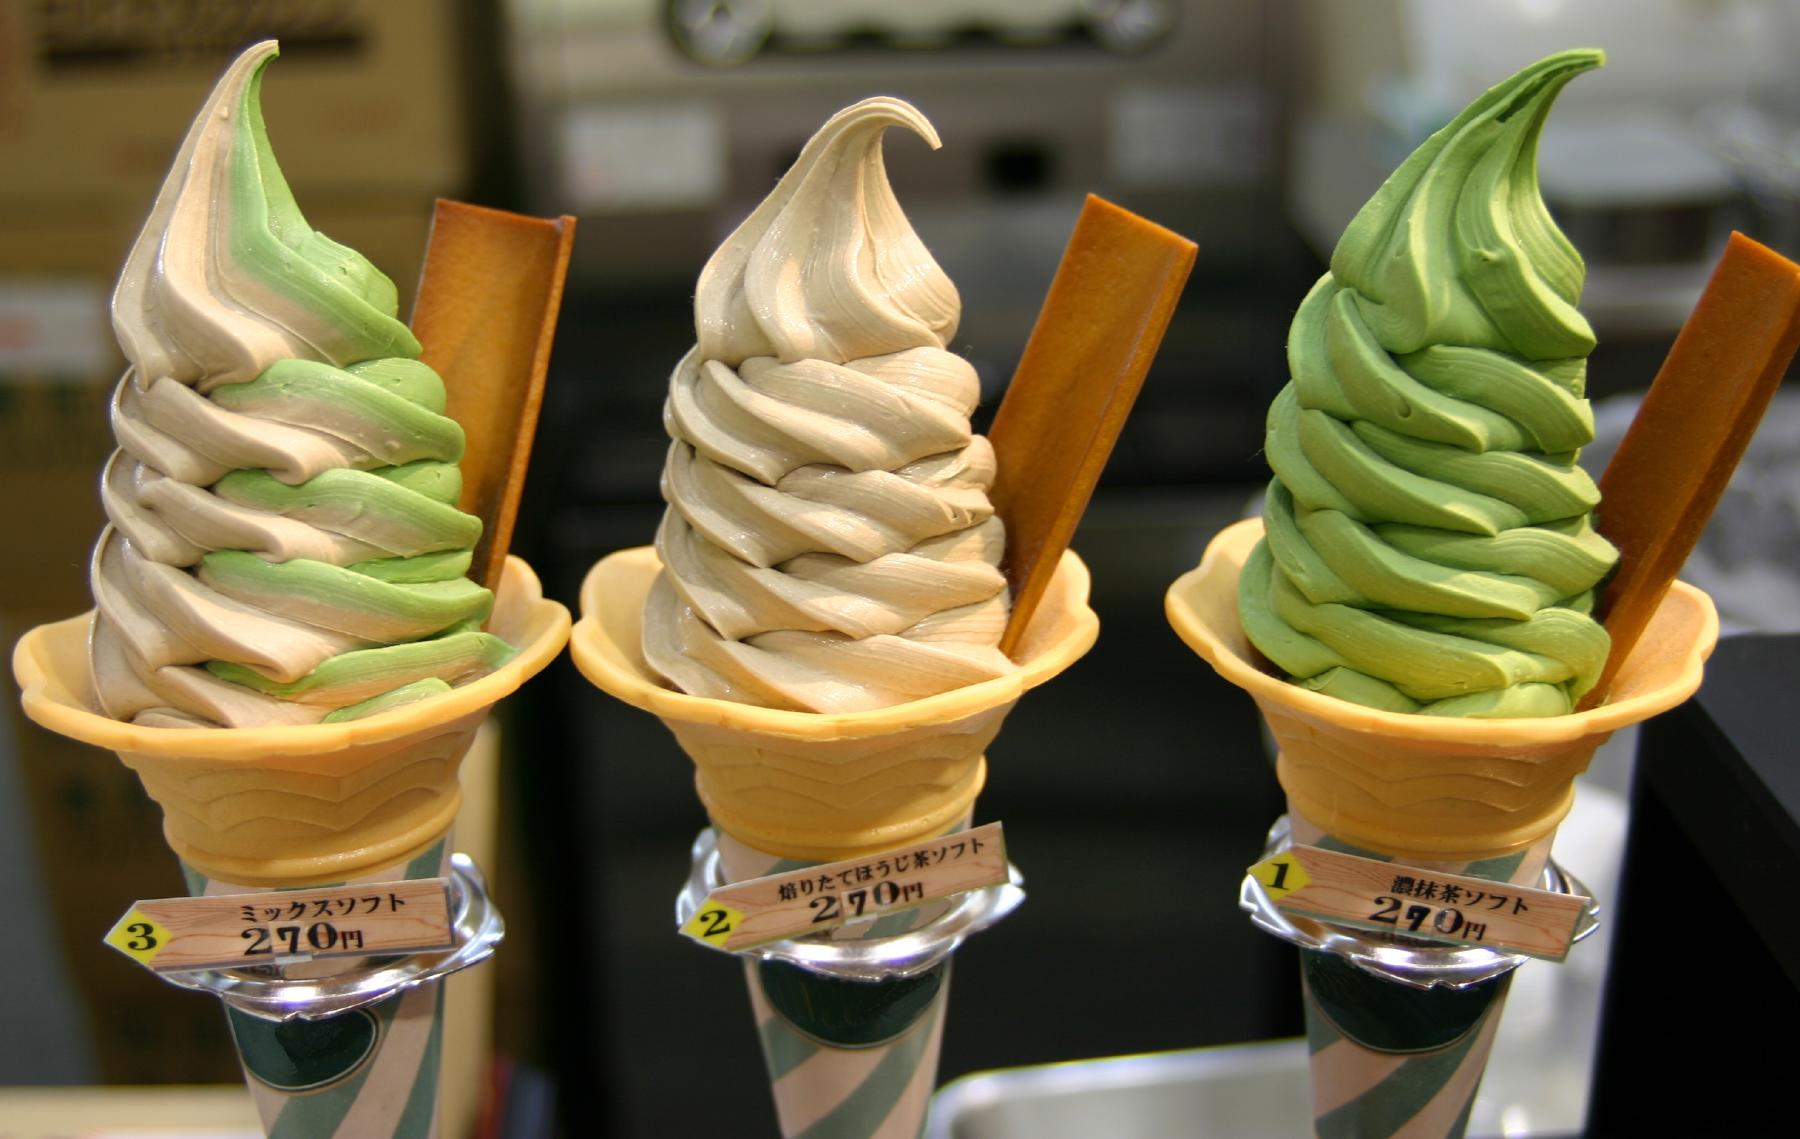 green tea ice cream nihonbunka12849922.jpg